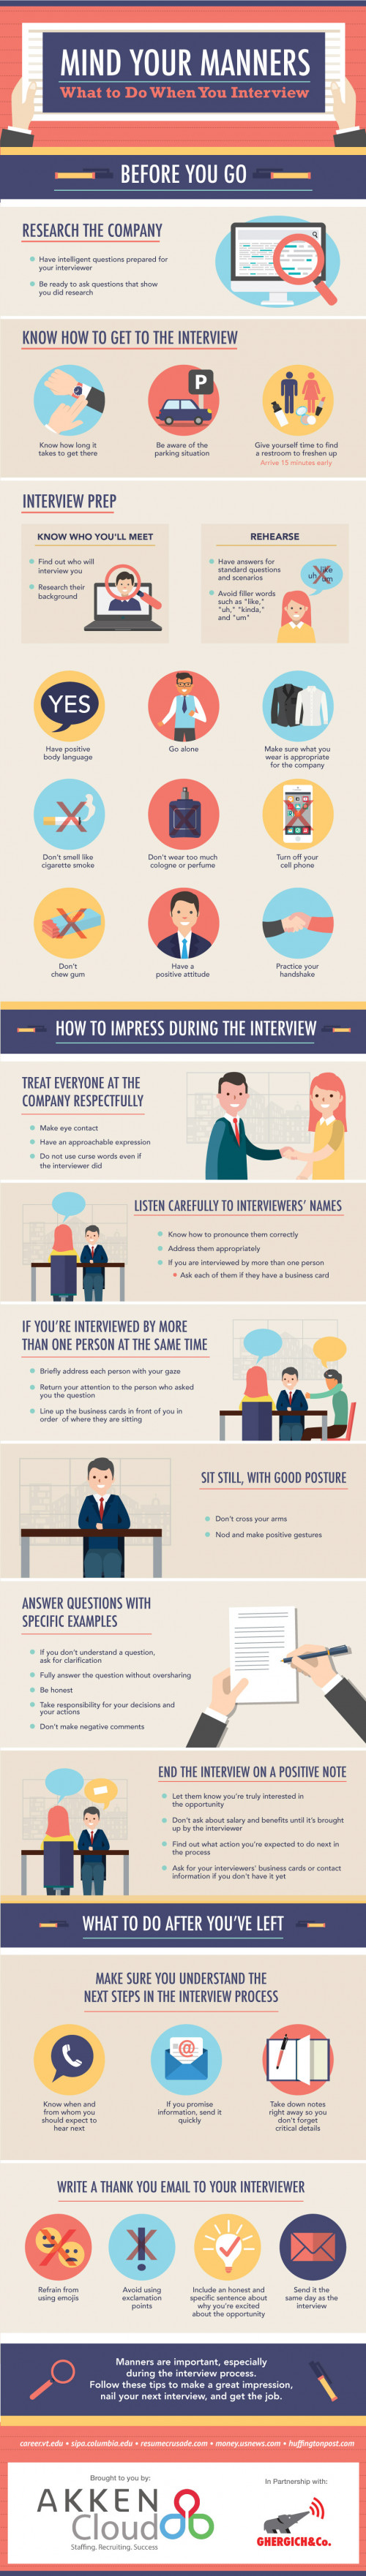 Mind Your Manners: What to Do When You Interview